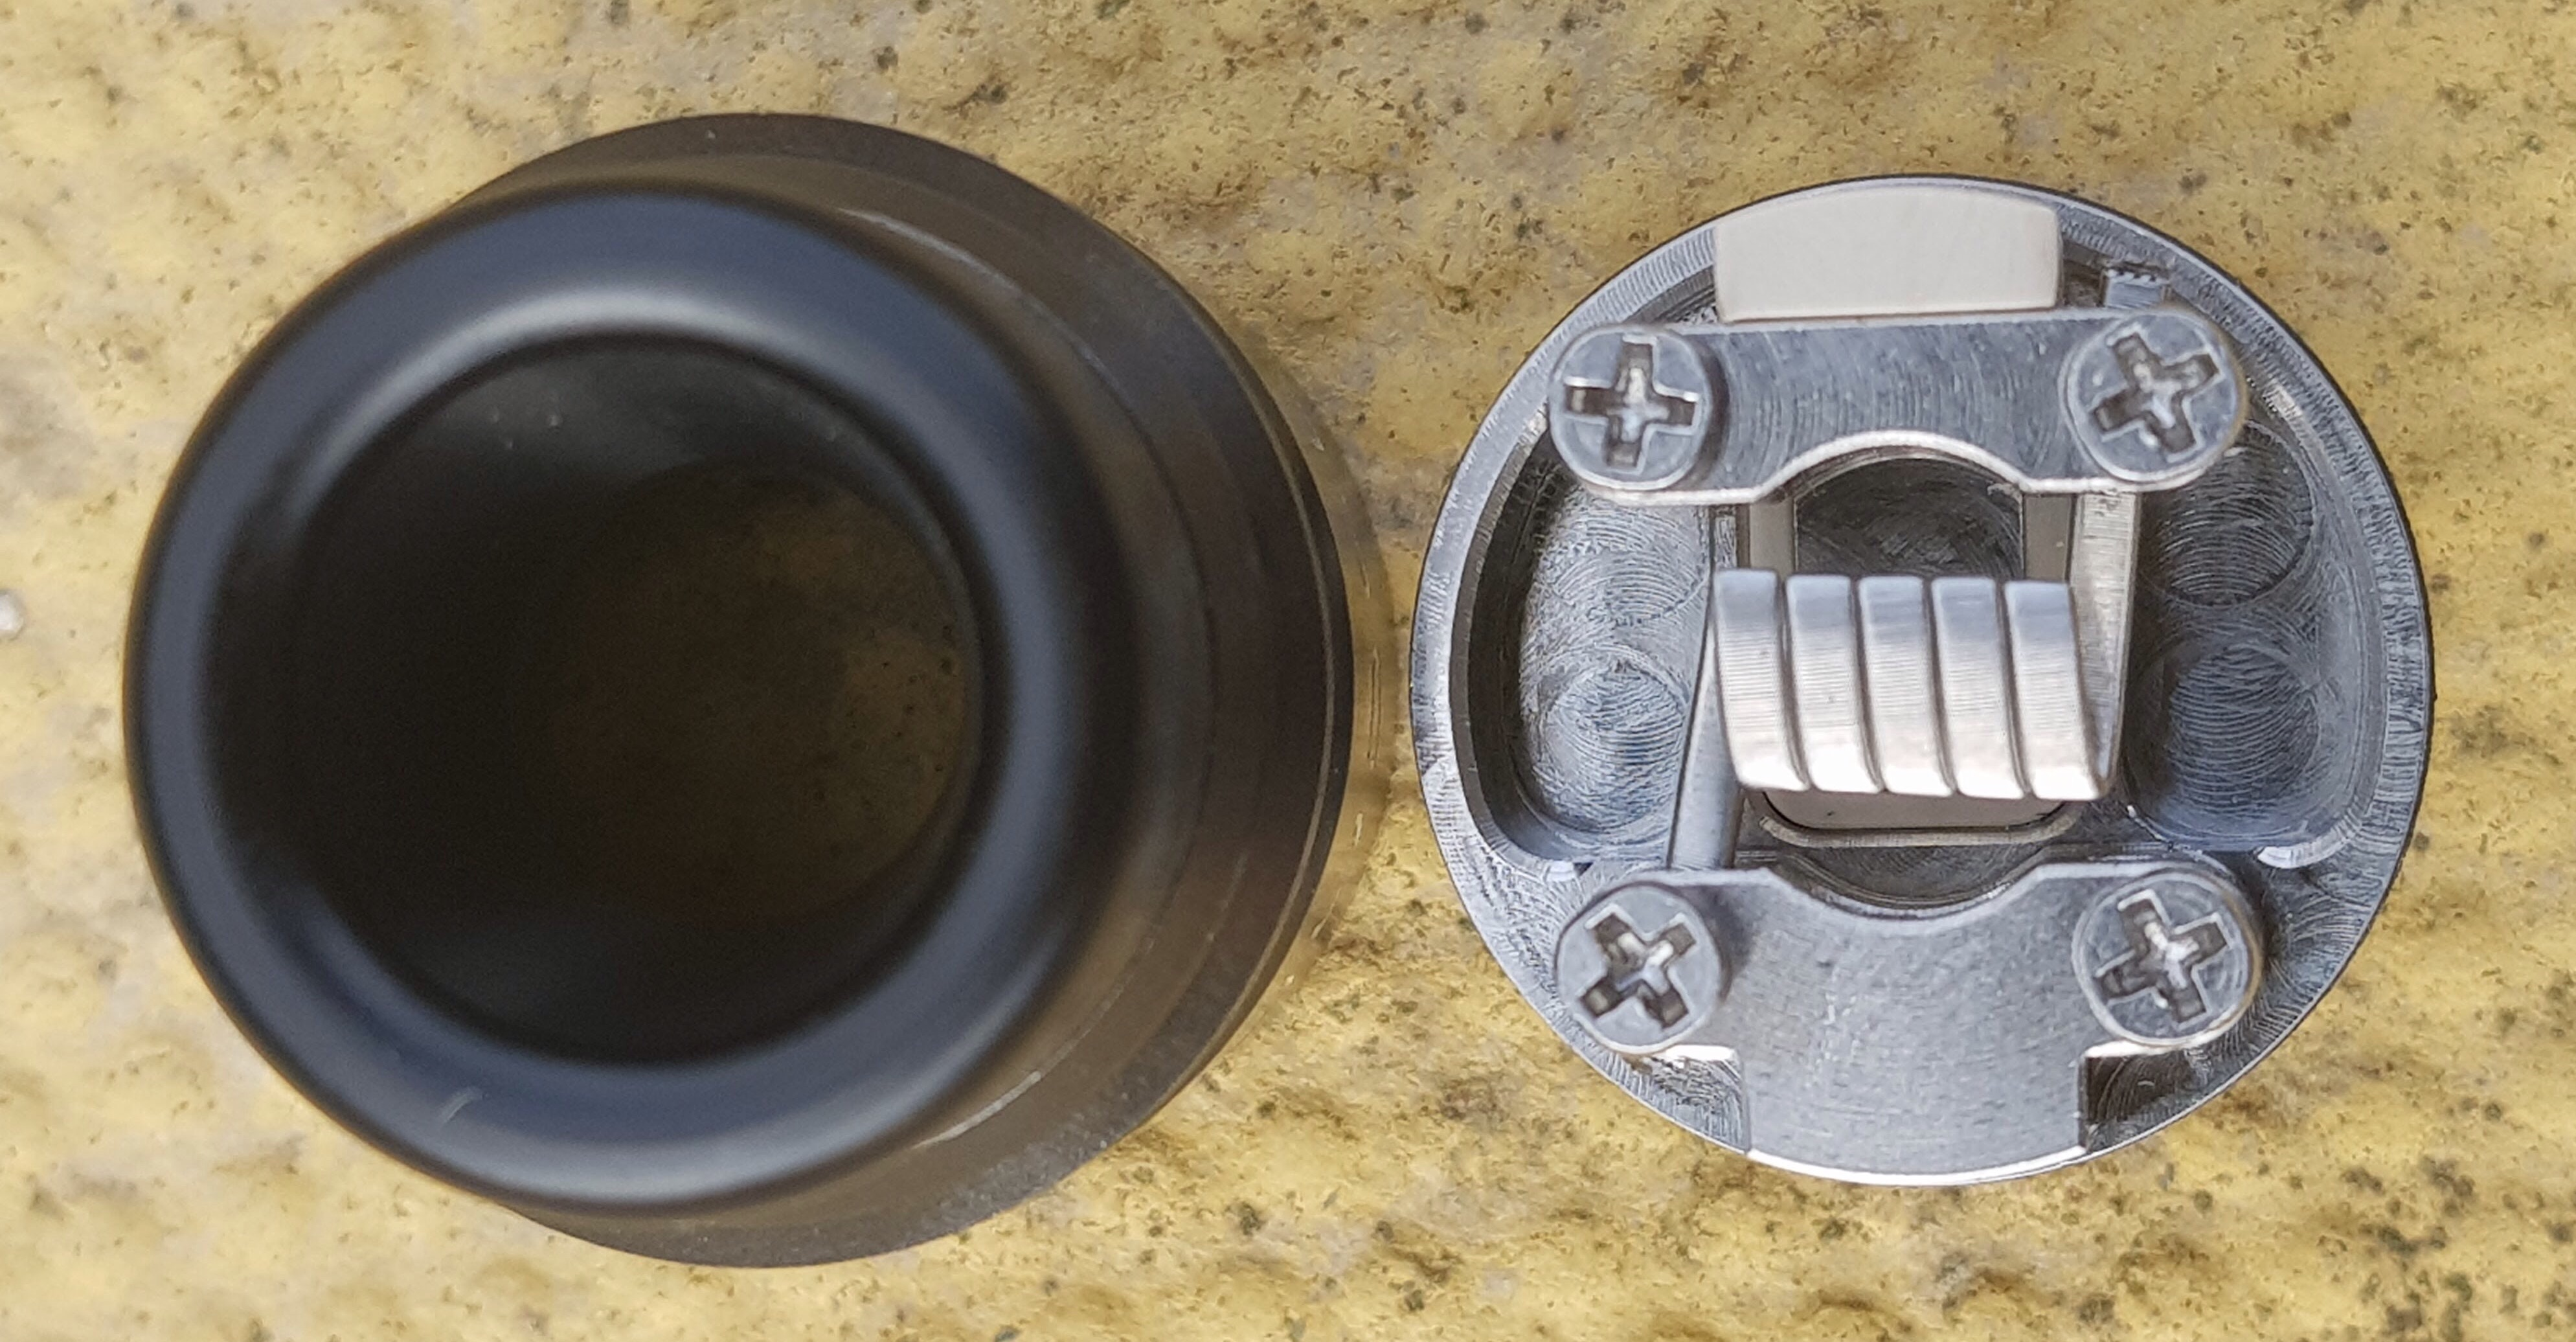 Wotofo Nudge RDA Review